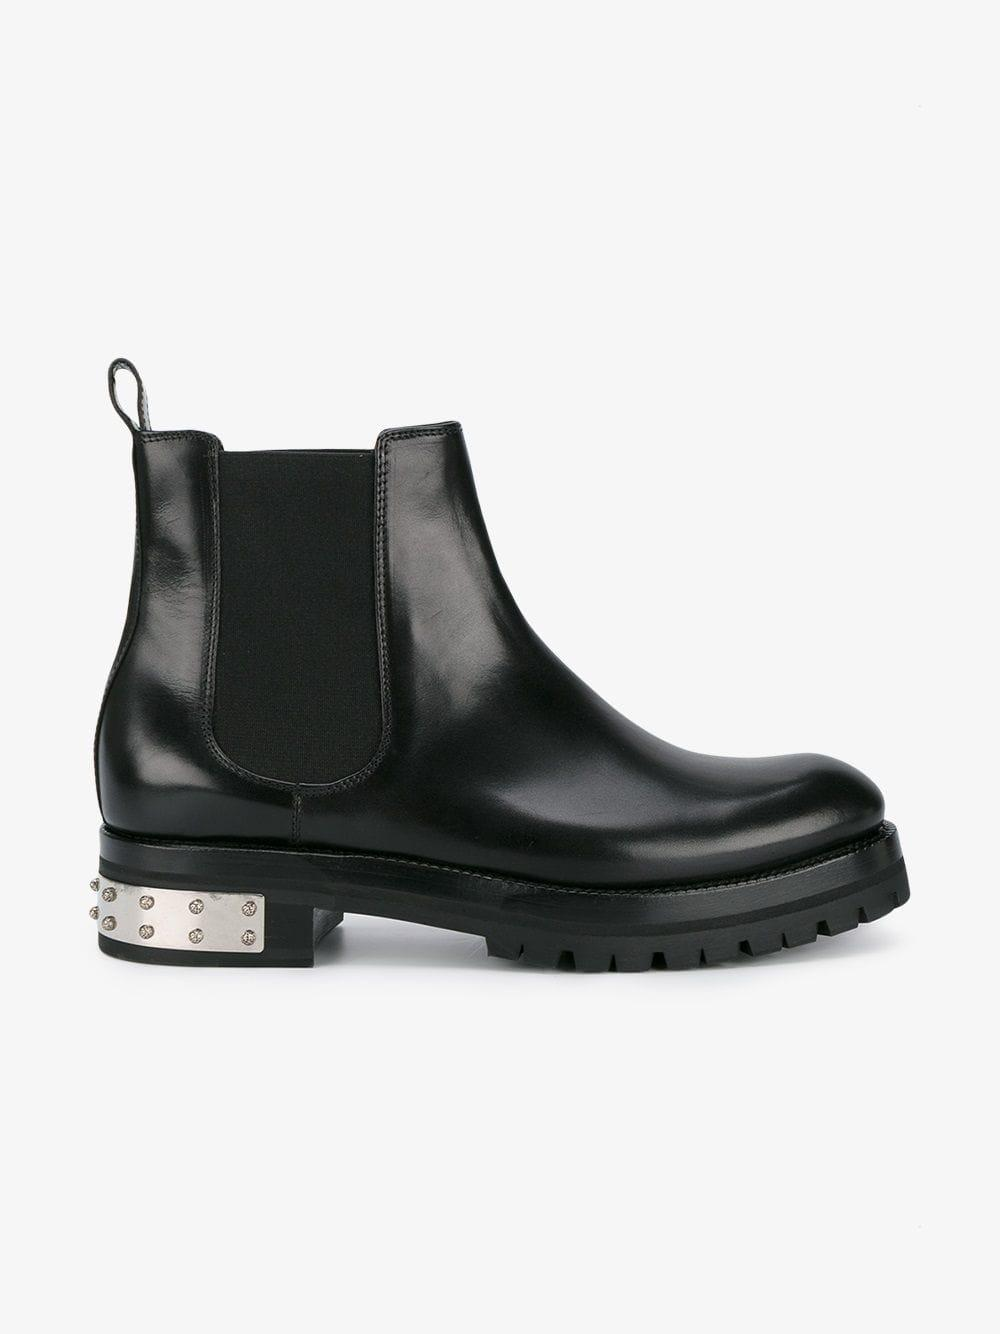 Alexander McQueen Leather Studded-heel Mod Ankle Boots in Black